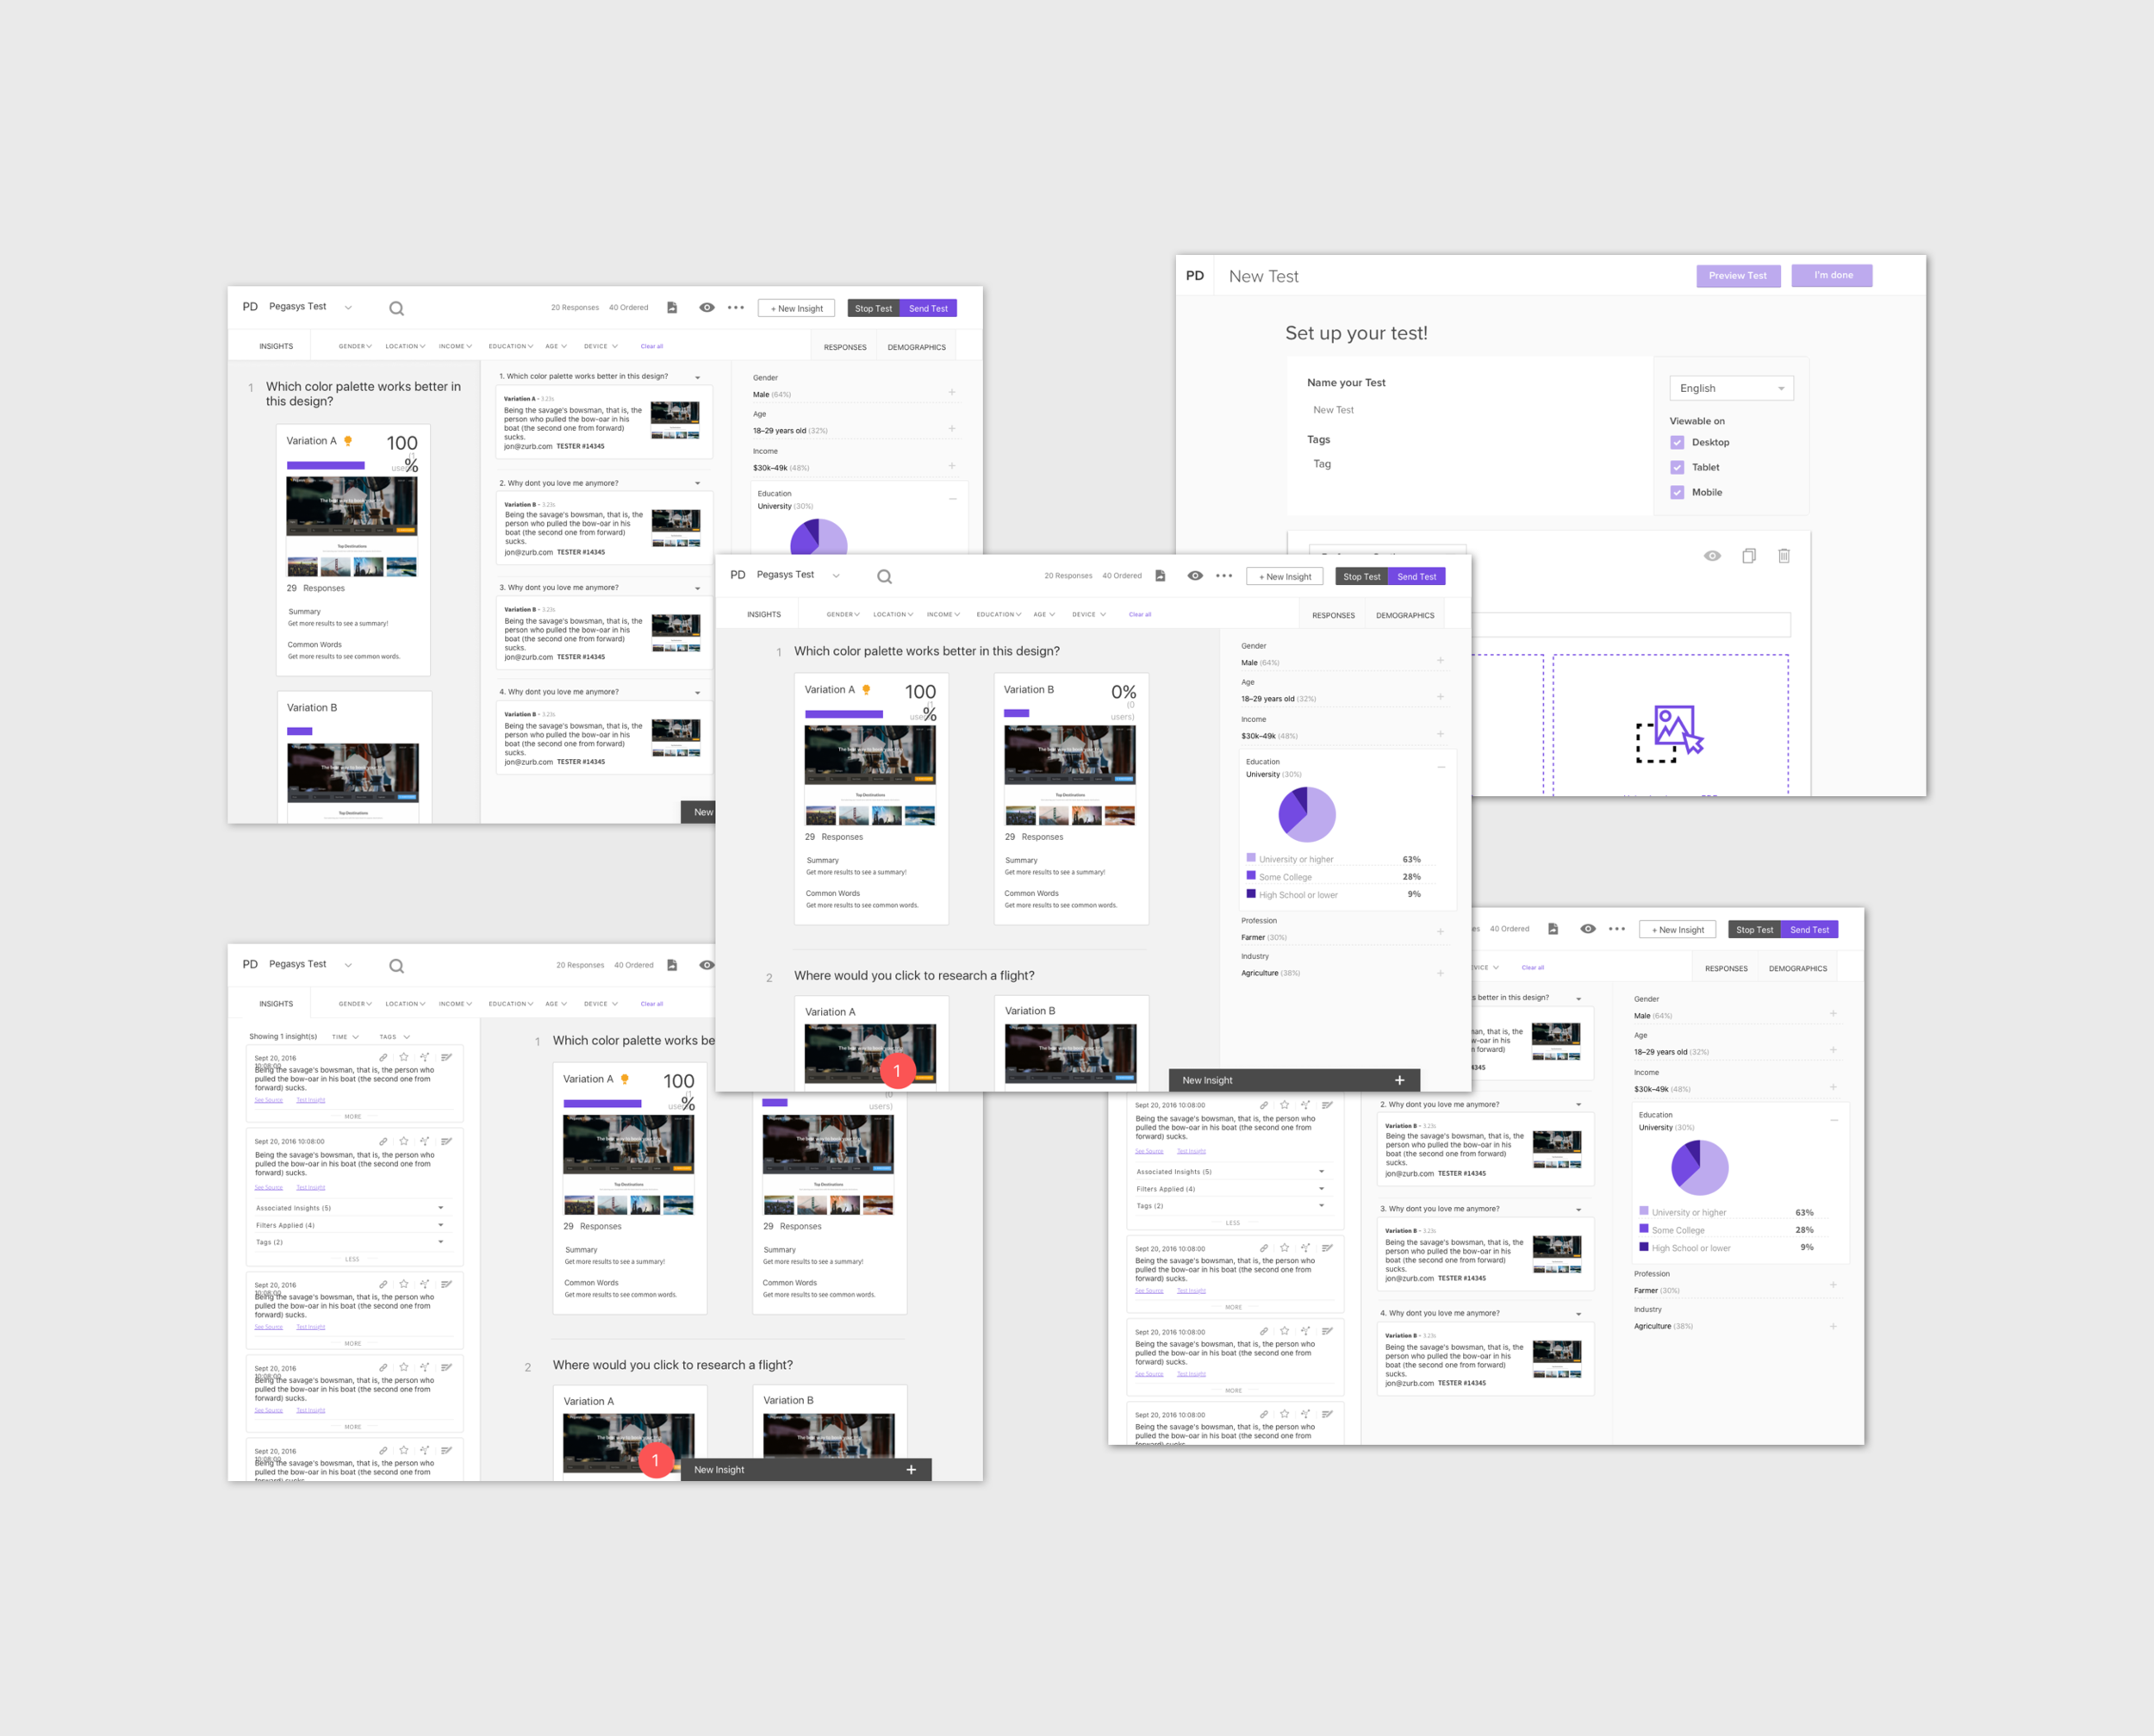 Wireframes - We moved our doodled ideas into a digital format once we had a general concept laid out in sketch form. The wireframes helped us see the flow of the application, notice minute details, and started testing with users to get their feedback.